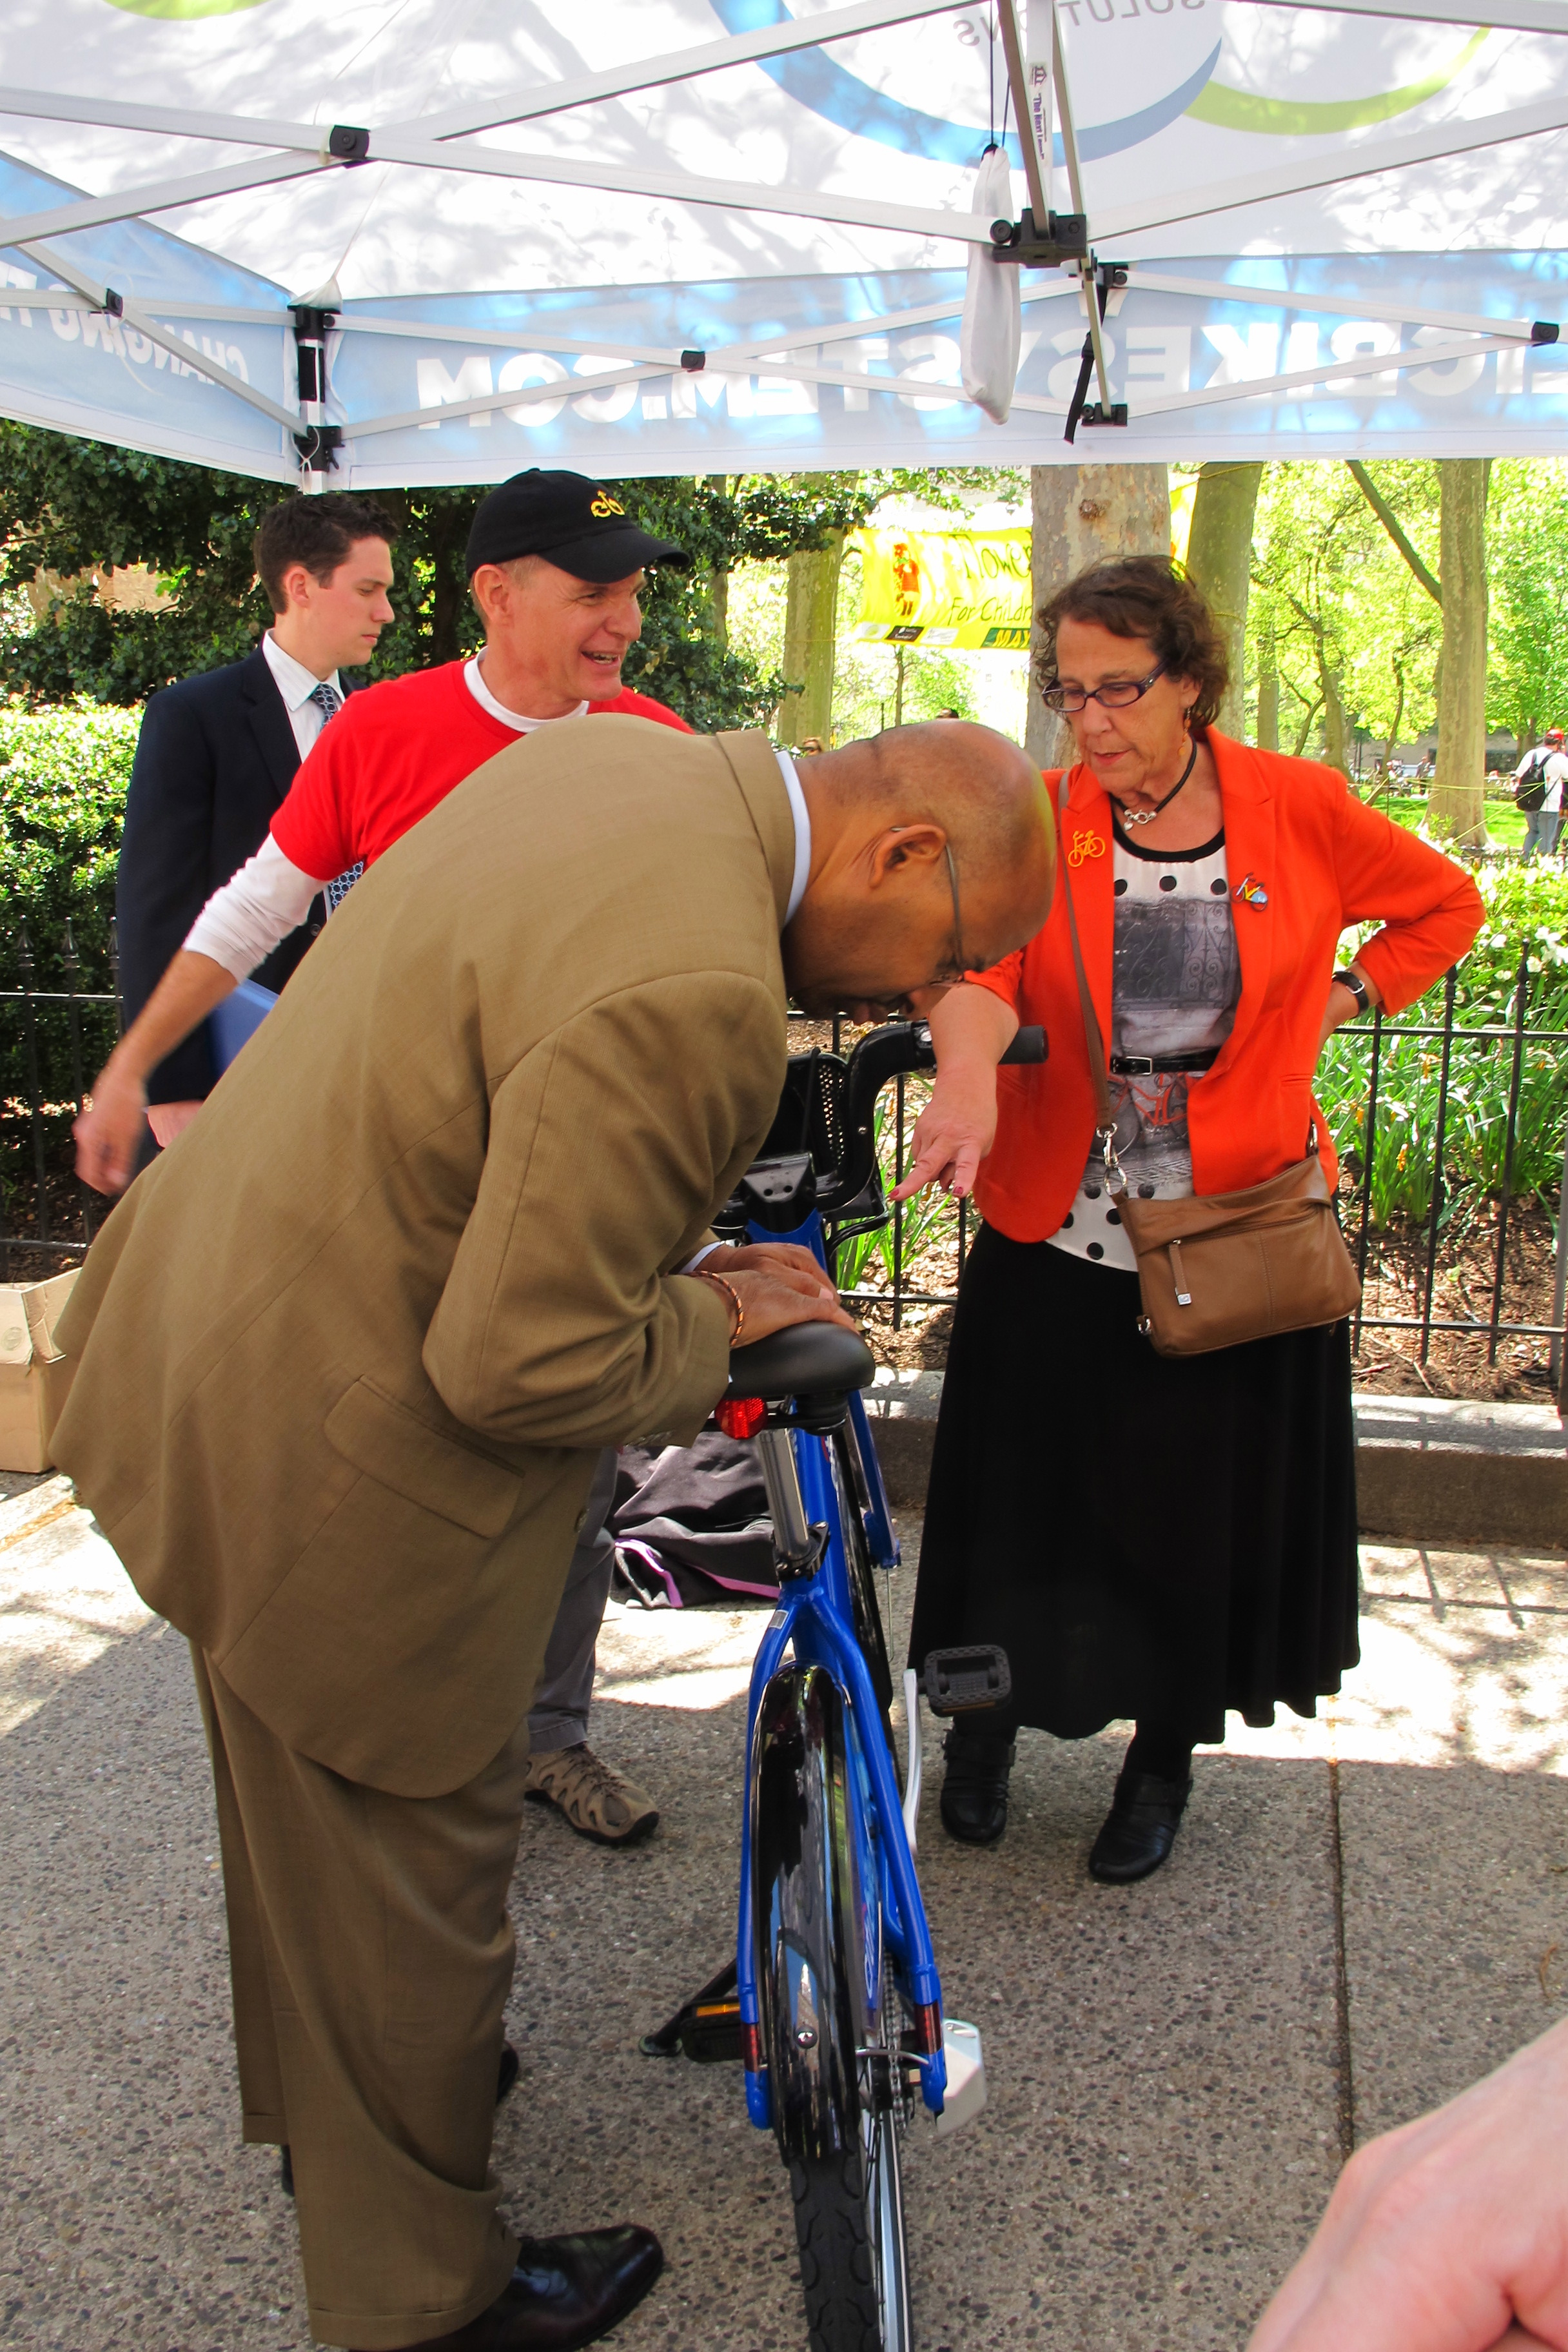 Mayor Michael Nutter, Deputy Mayor Rina Cutler kick the tires as Alta's Charlie Denney explains their system and bikes.